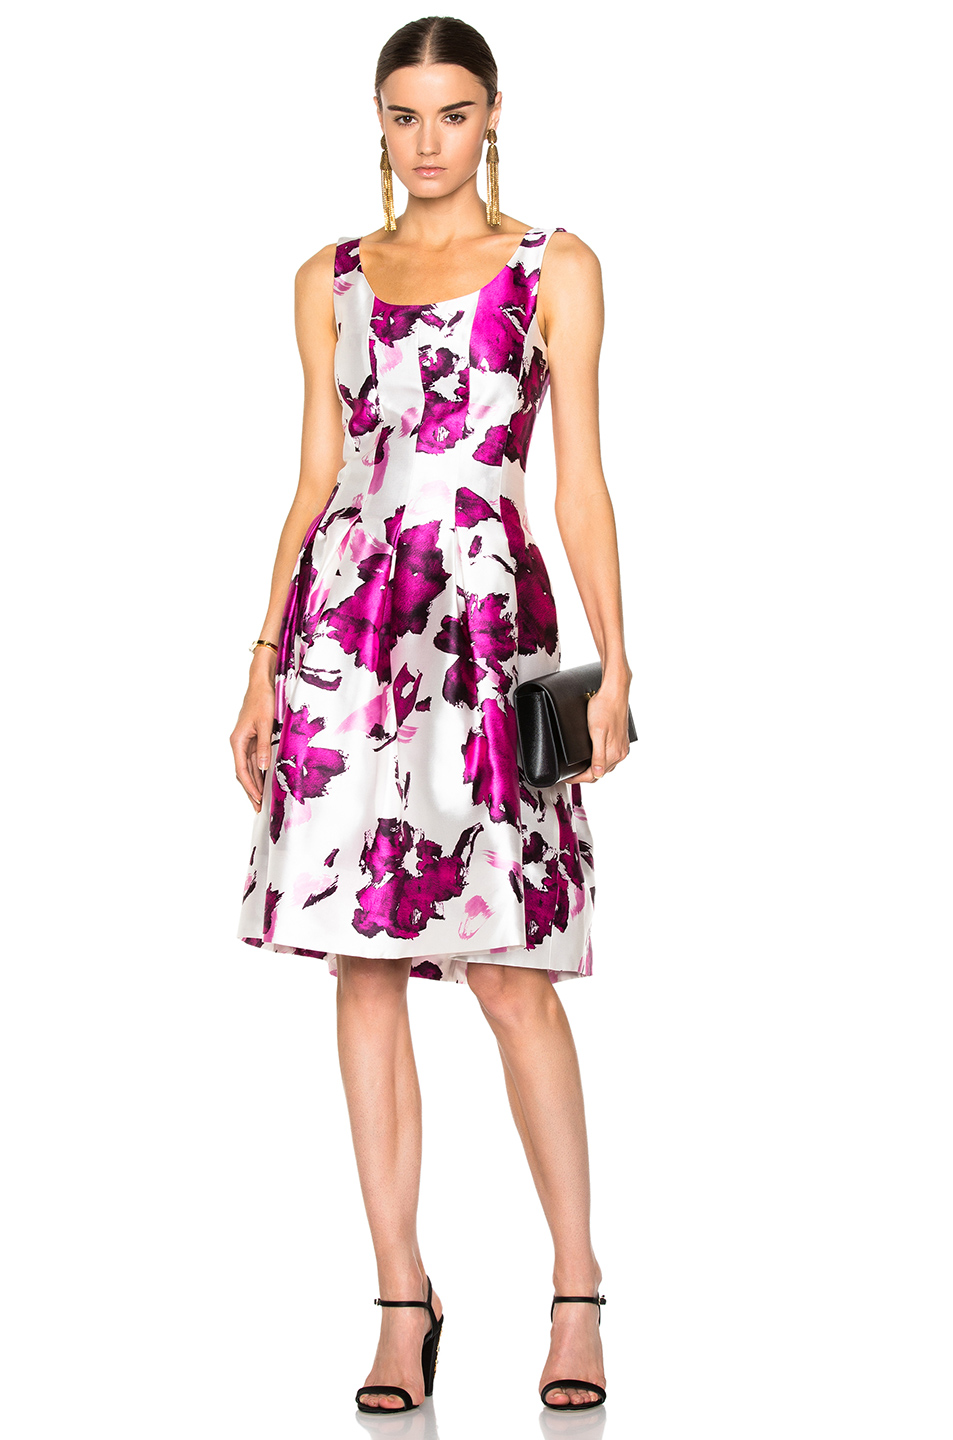 OSCAR DE LA RENTA Watercolor Floral-Print Mikado Cocktail Dress, Magenta at FORWARD